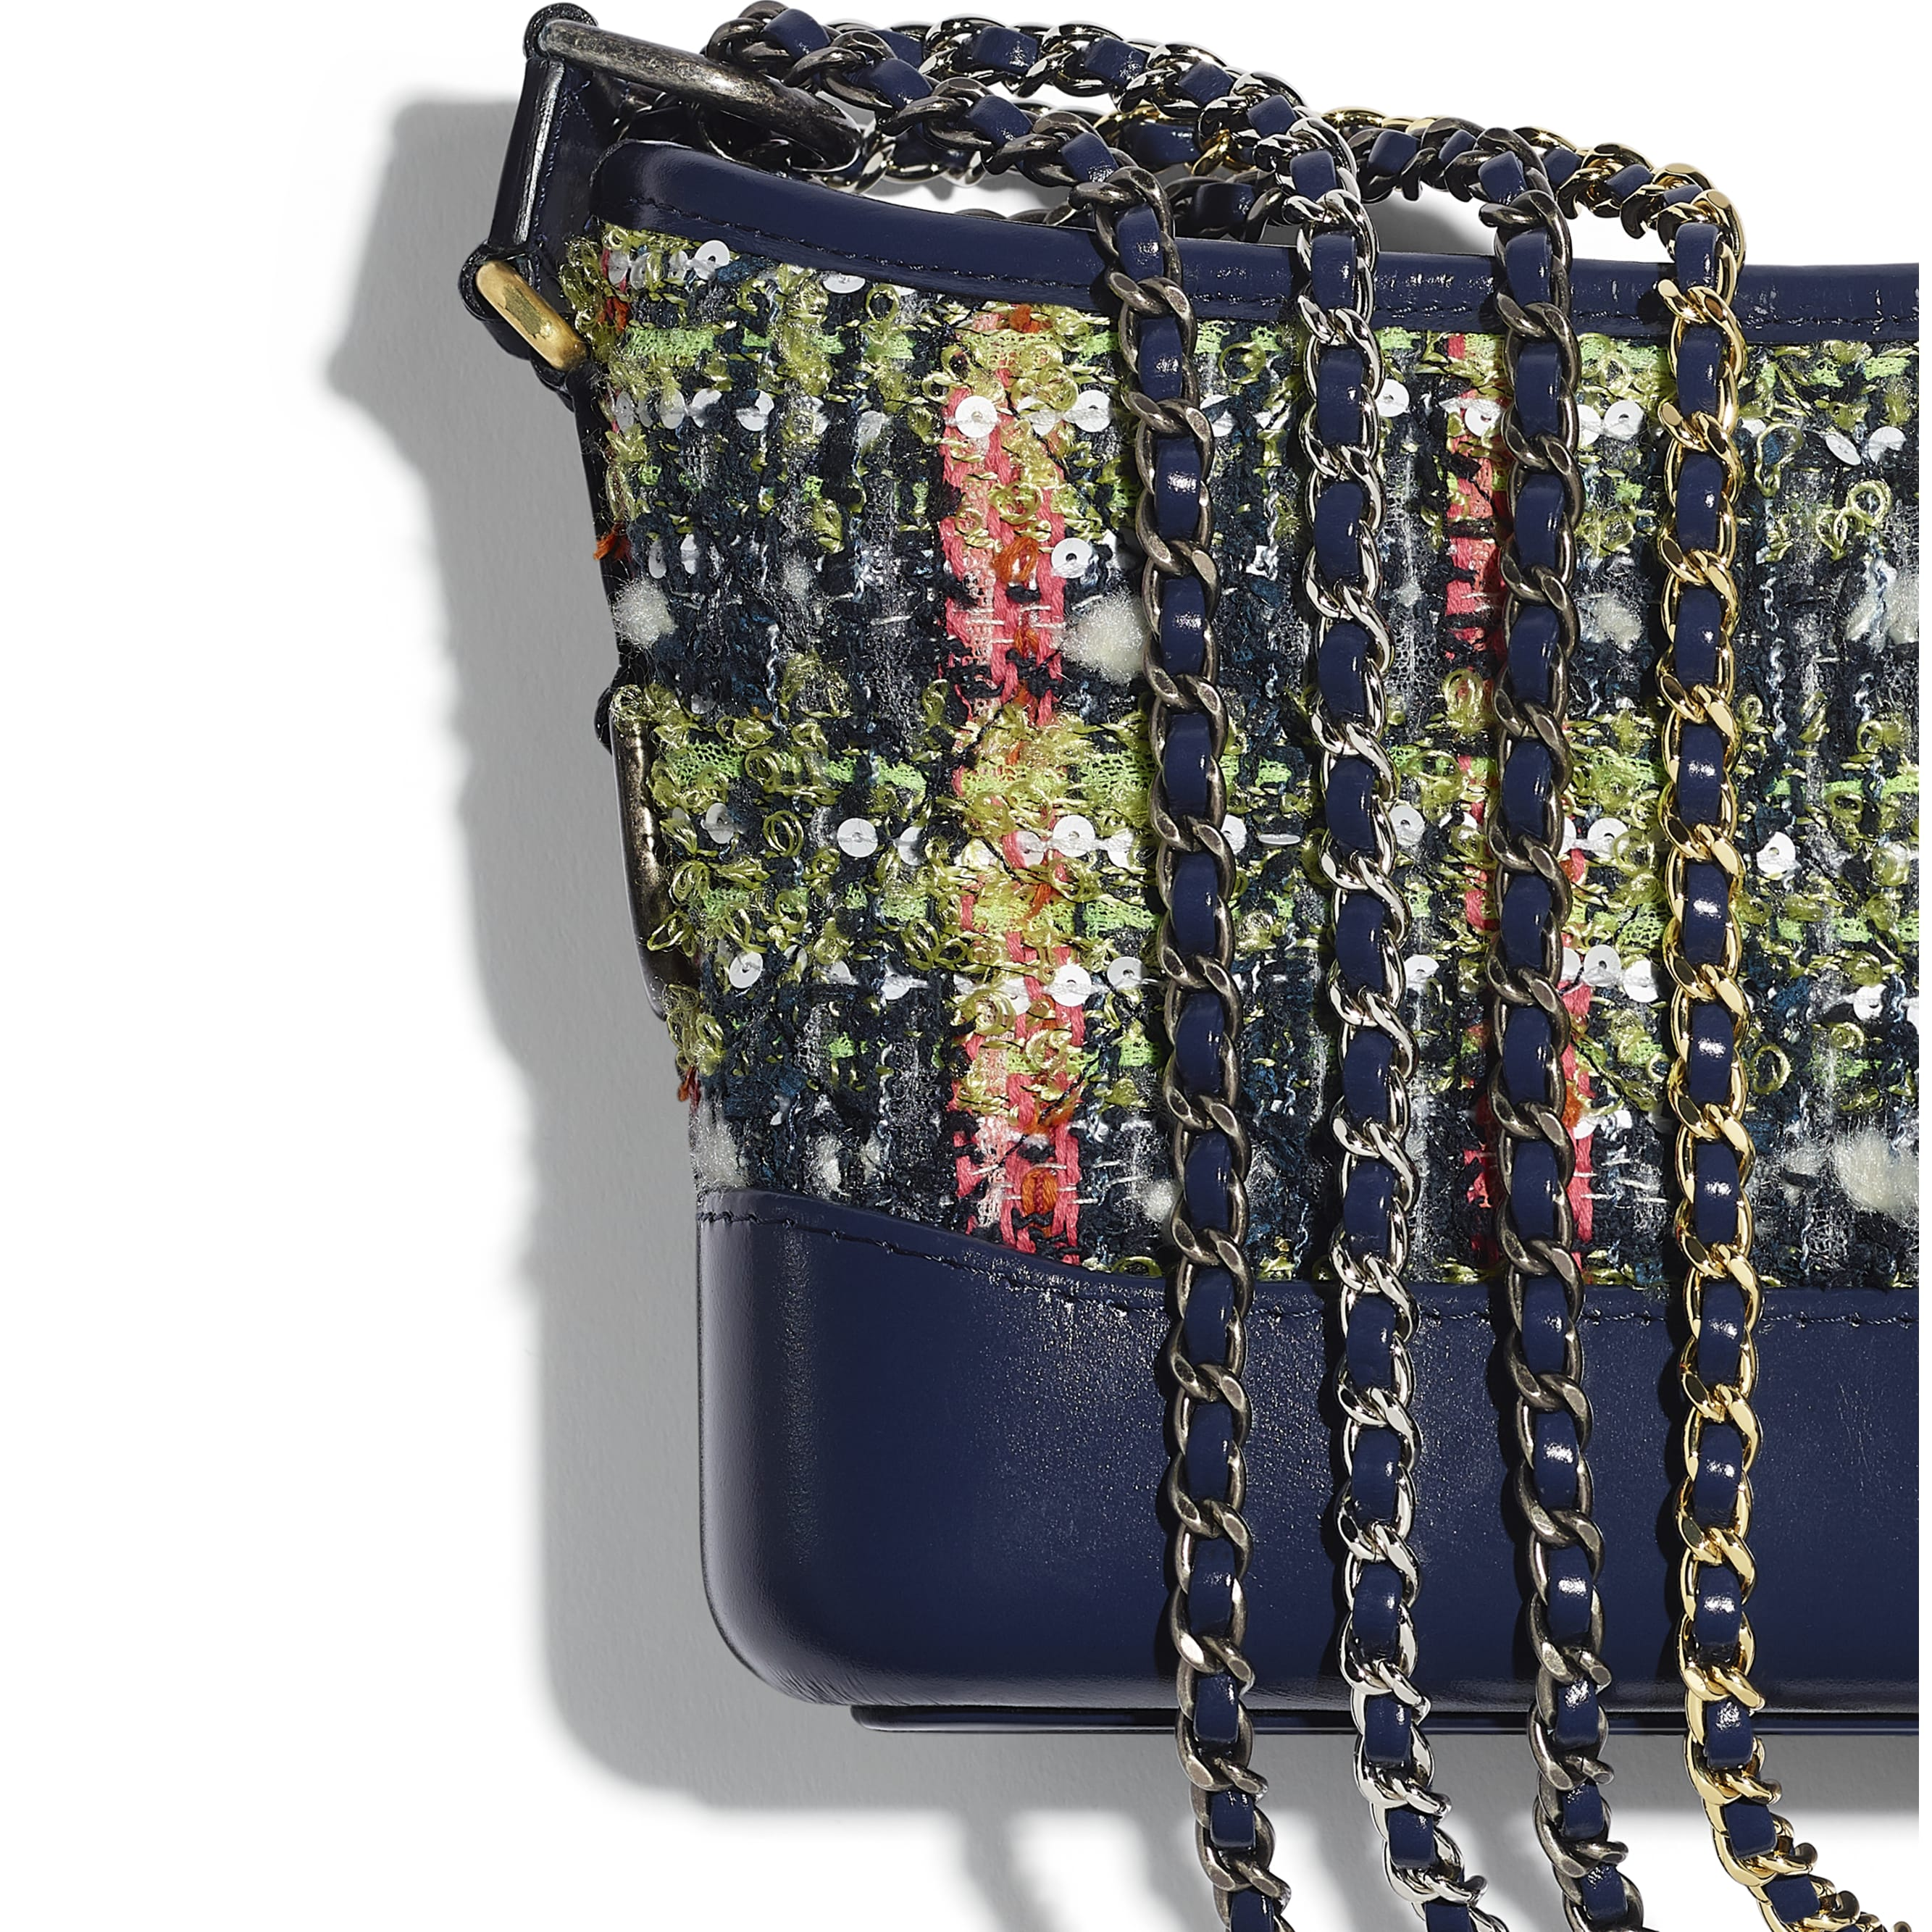 CHANEL'S GABRIELLE Small Hobo Bag - Navy Blue, Green, Pink & White - Tweed, Calfskin, Gold-Tone, Silver-Tone & Ruthenium-Finish Metal - CHANEL - Extra view - see standard sized version